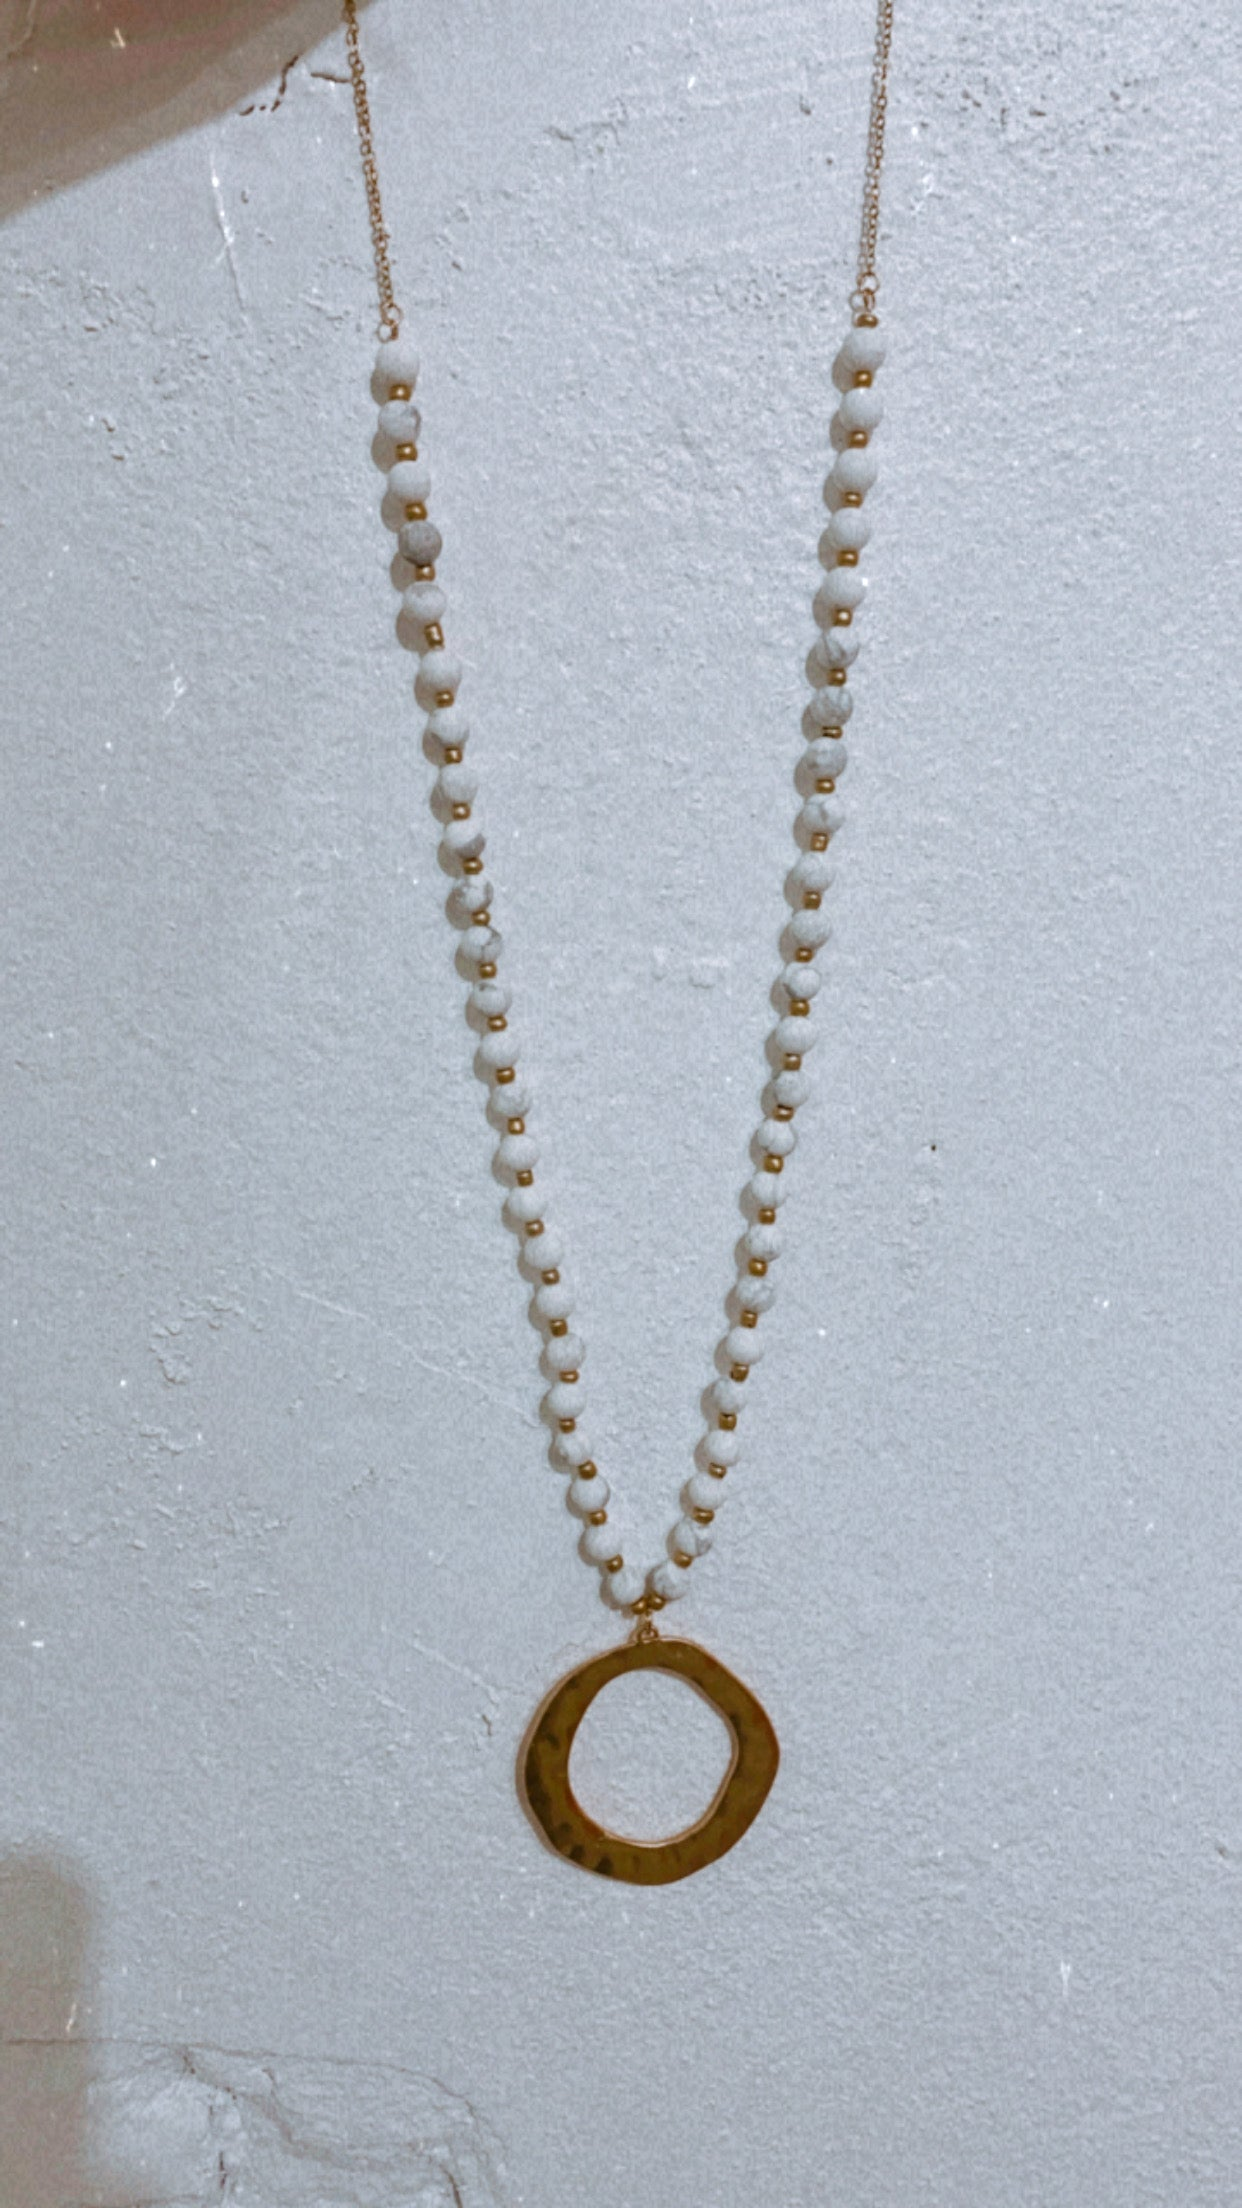 White Stone & Hammered Circle Necklace